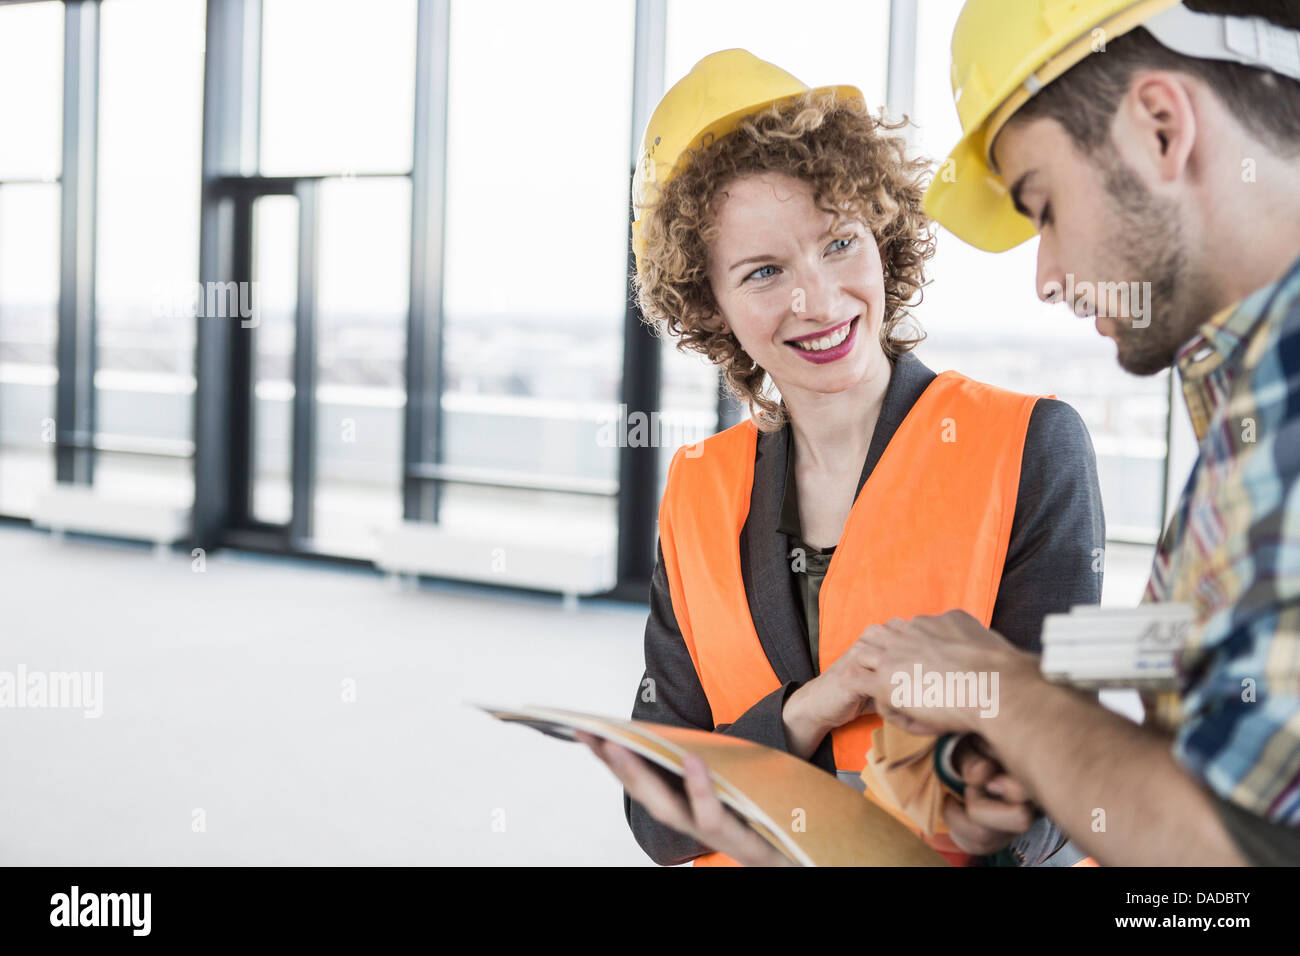 Builders wearing hard hats discussing project - Stock Image